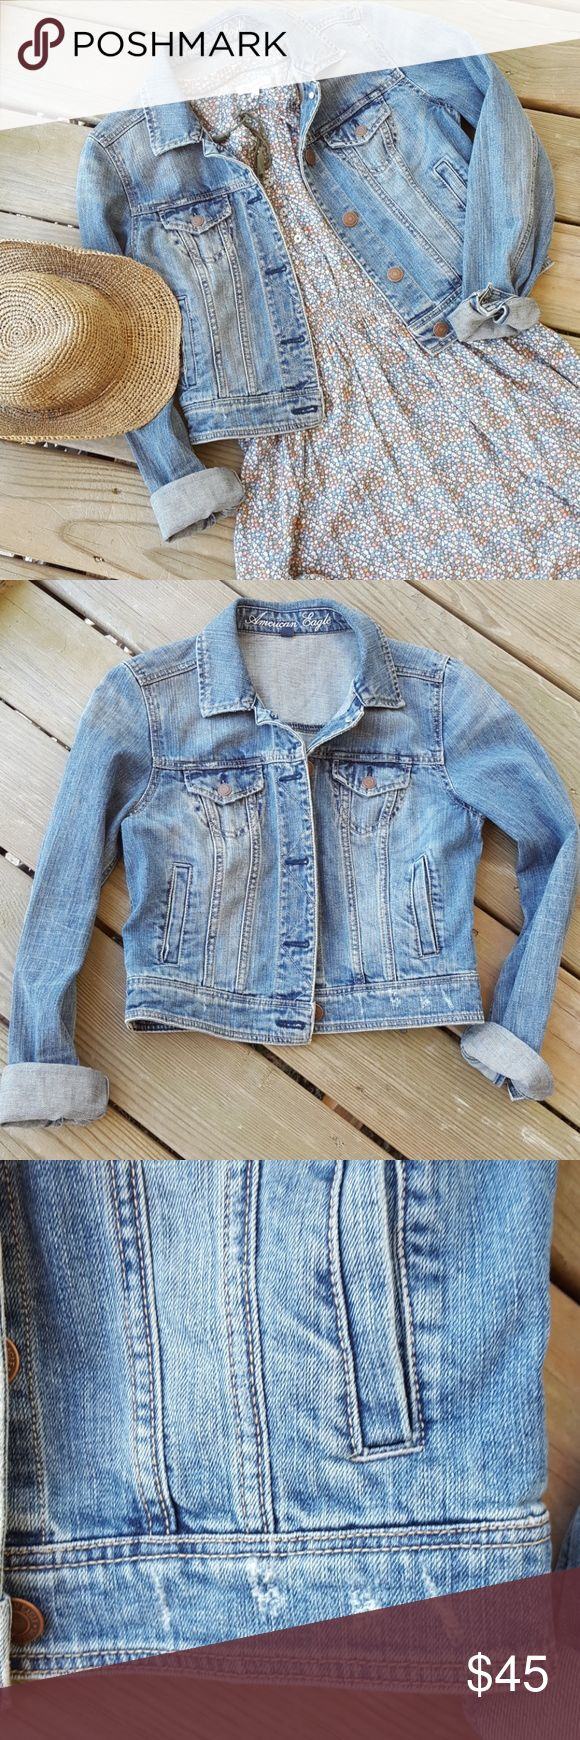 American Eagle jean jacket EUC!! Classic jean jacket.  Factory distressed. No damage or stains.  *Smoke free home*  ***I offer discounts on bundles!! ***Reasonable offers welcome! American Eagle Outfitters Jackets & Coats Jean Jackets